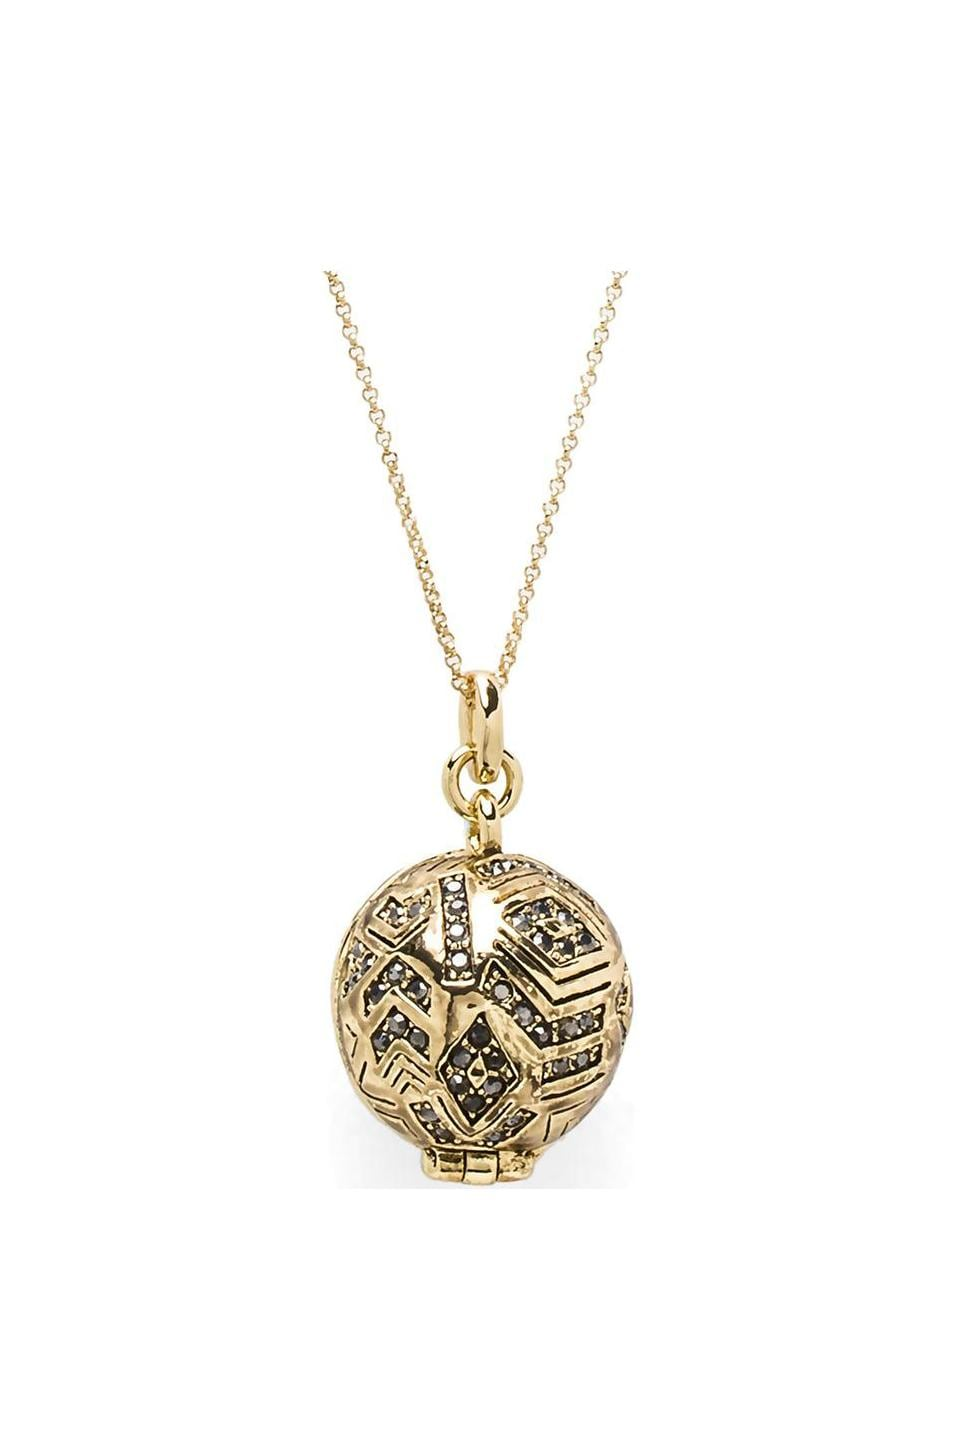 House of Harlow 1960 House of Harlow Treasure Trove Locket in Gold